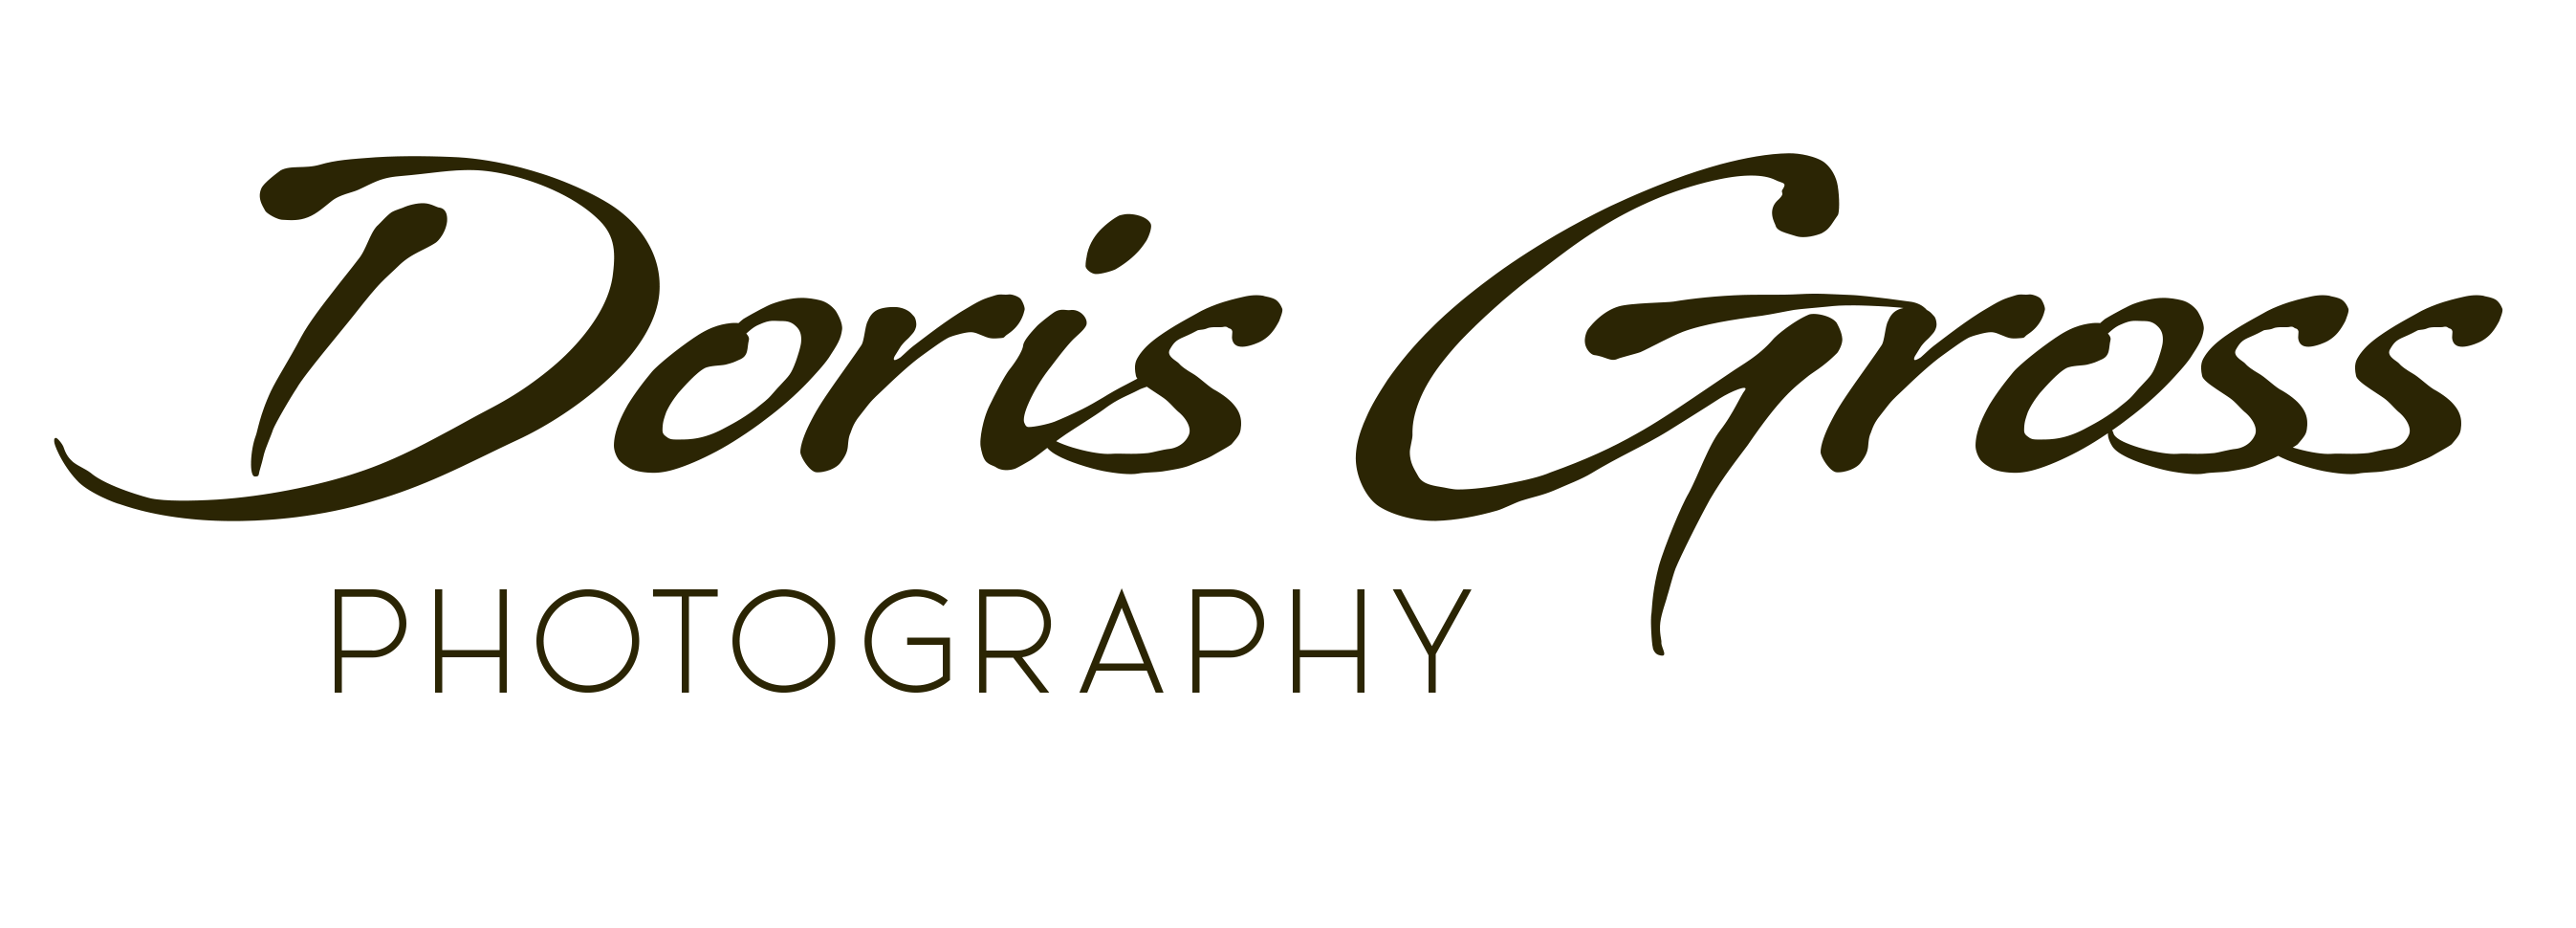 DORIS GROSS PHOTOGRAPHY